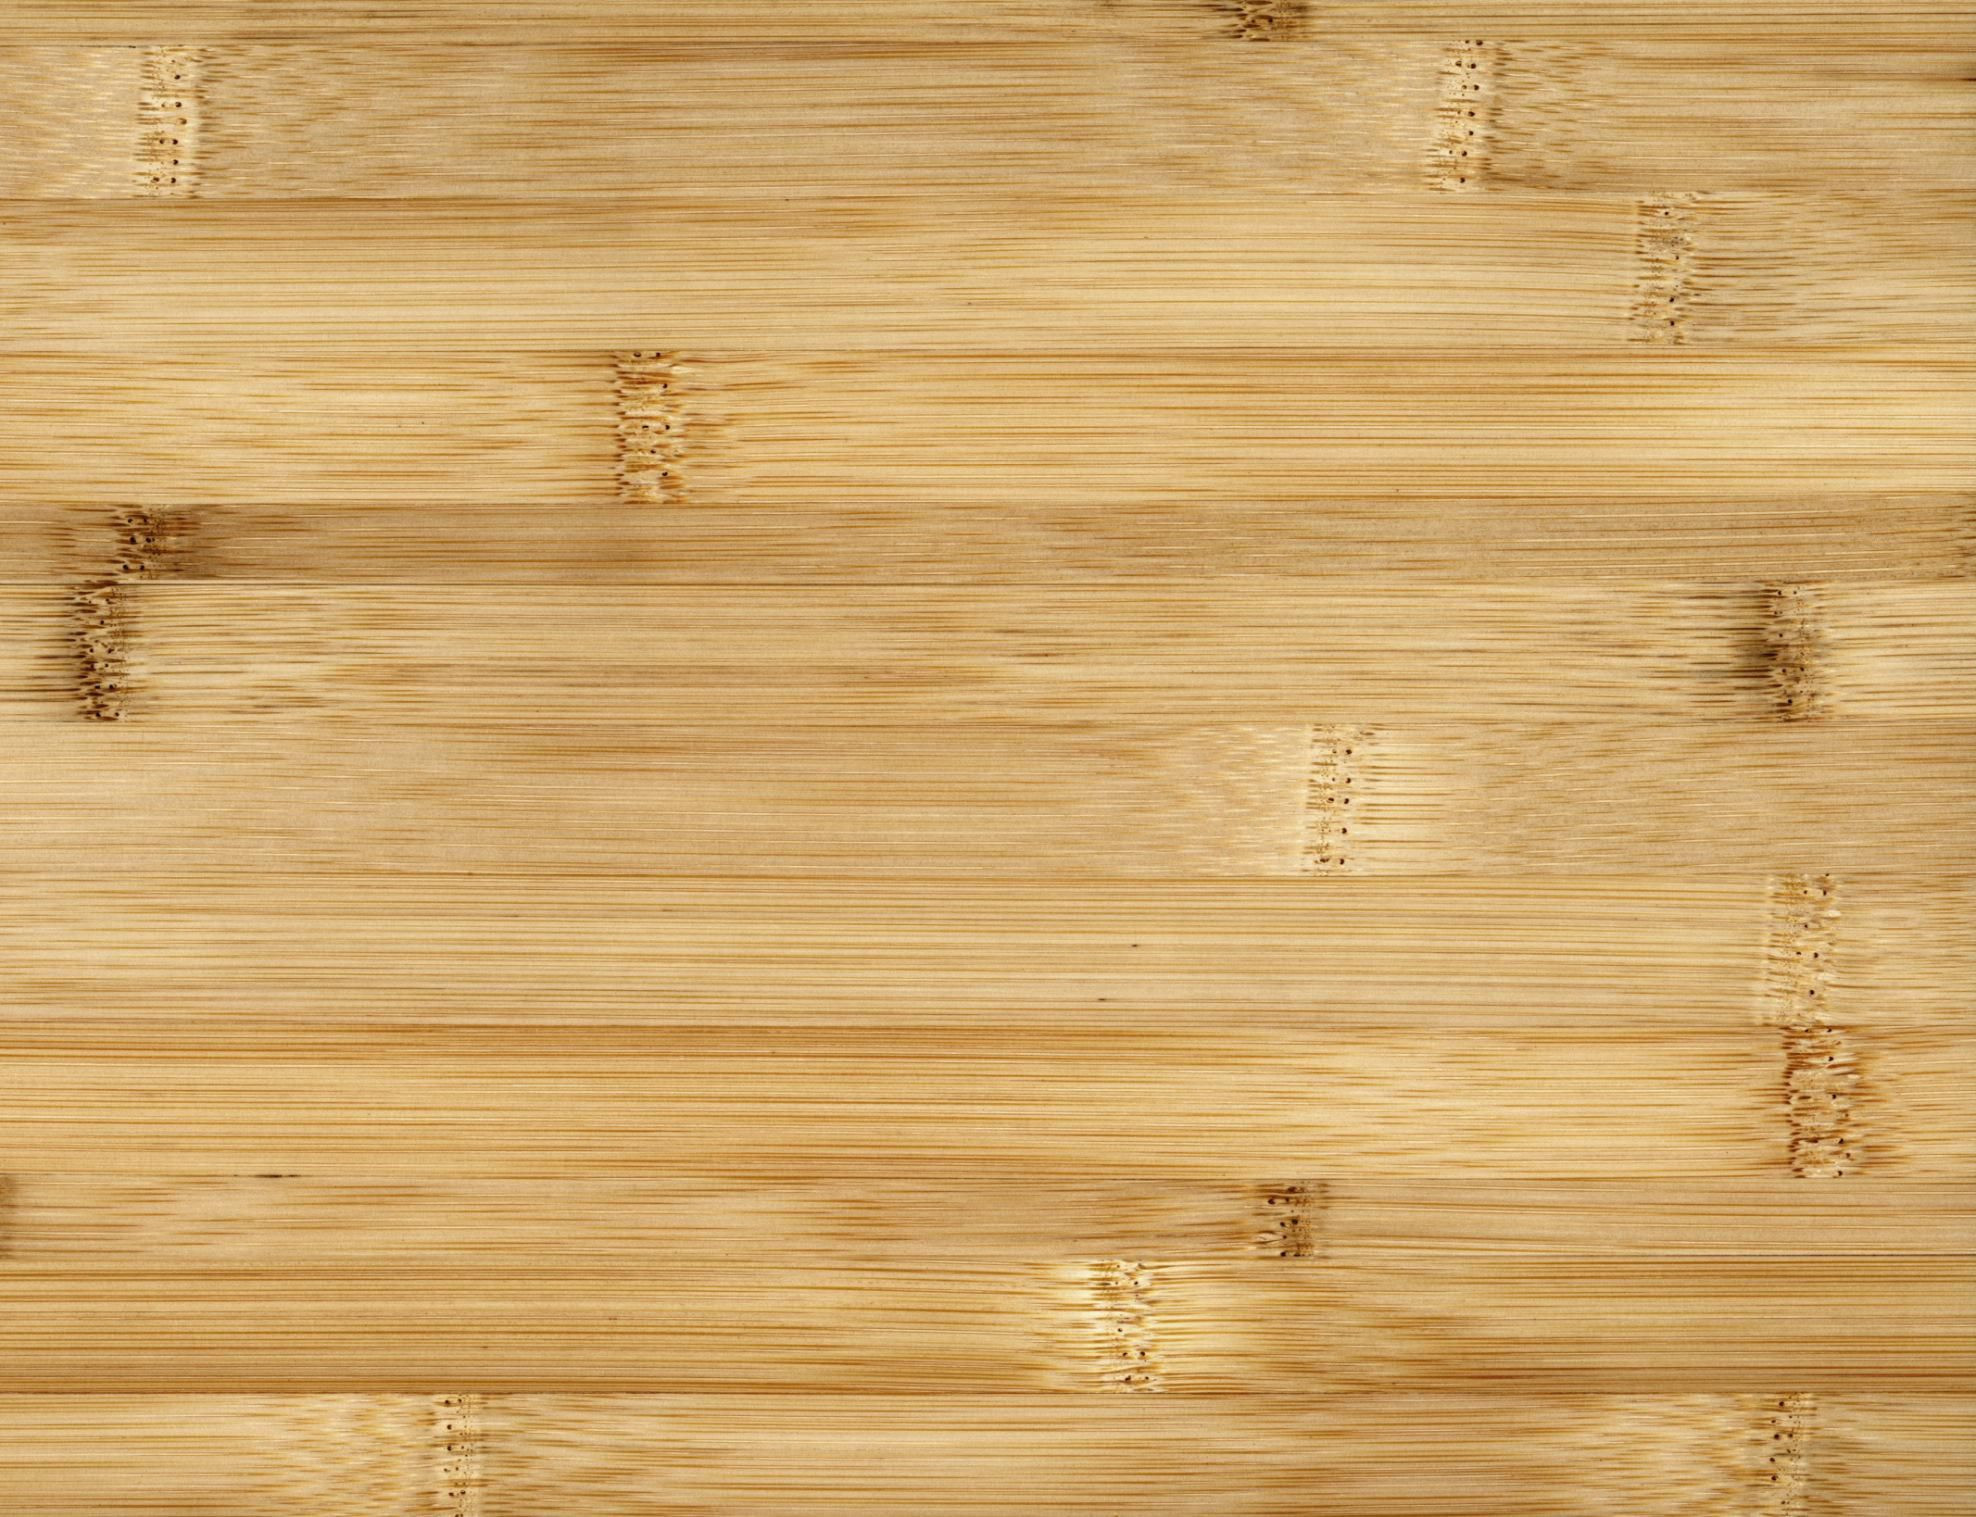 16 Fashionable Prefinished Hardwood Floor Cleaning Tips Unique